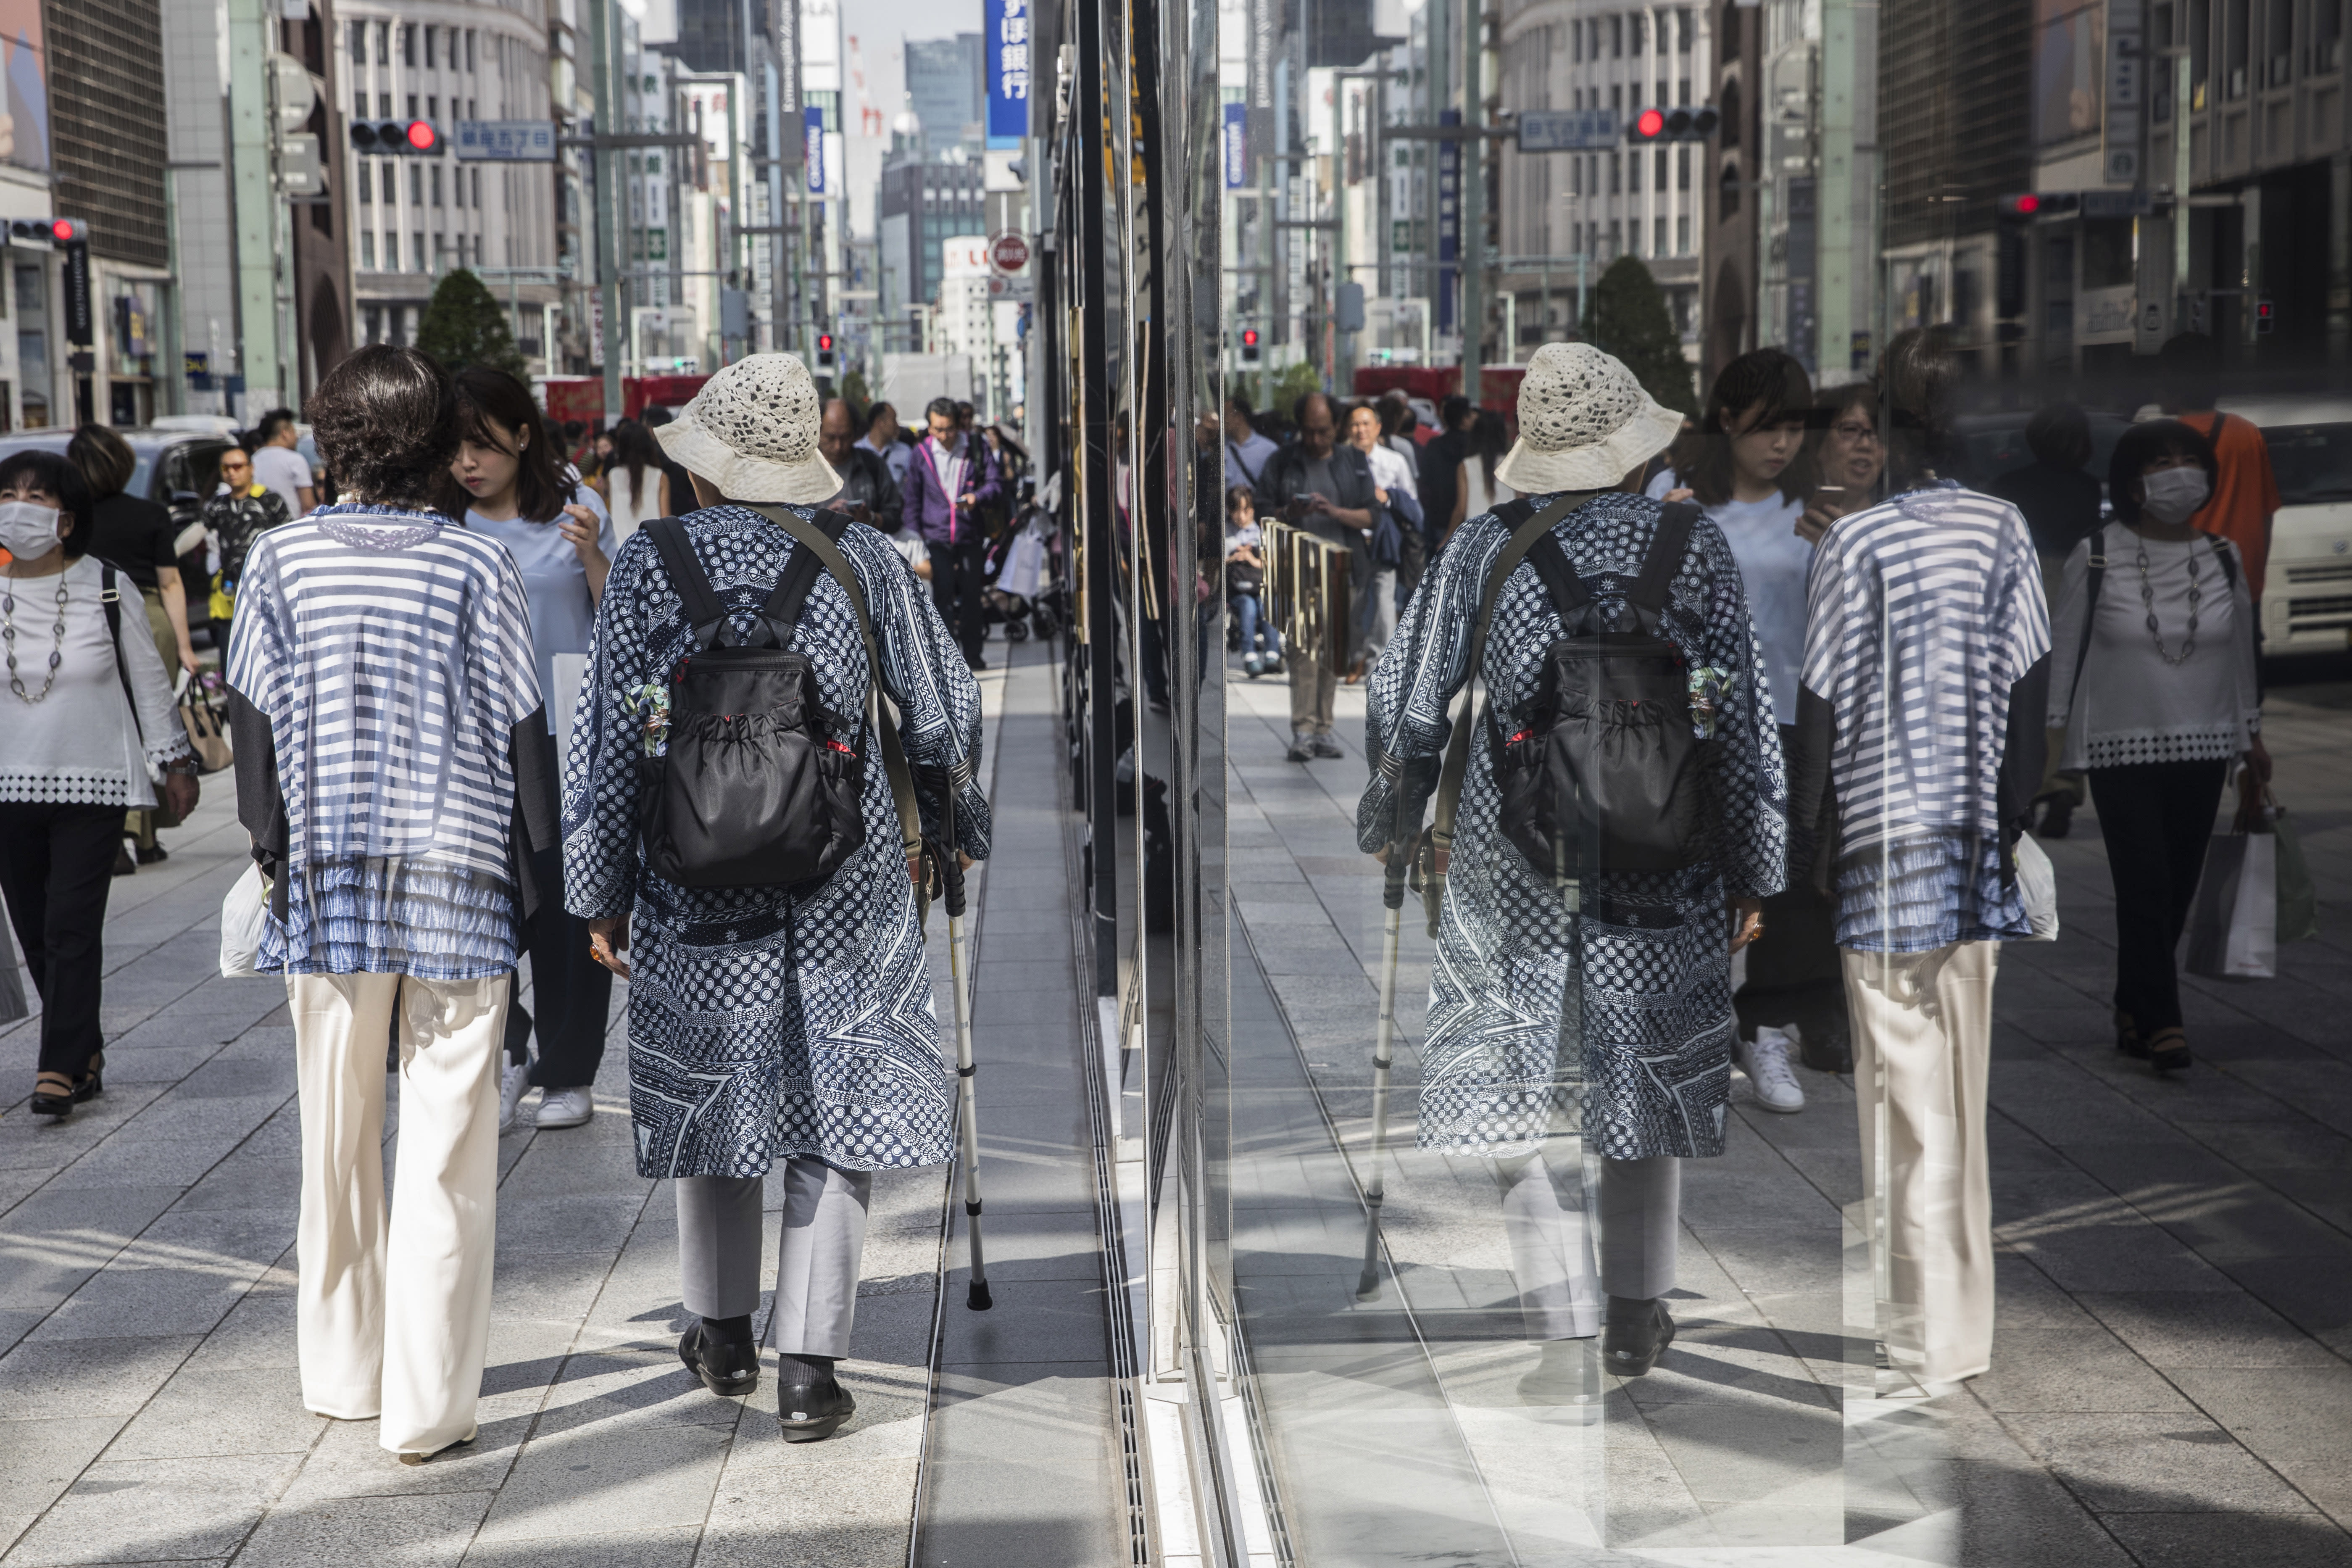 Japan's economy shrinks at fastest pace in 6 years, virus clouds outlook